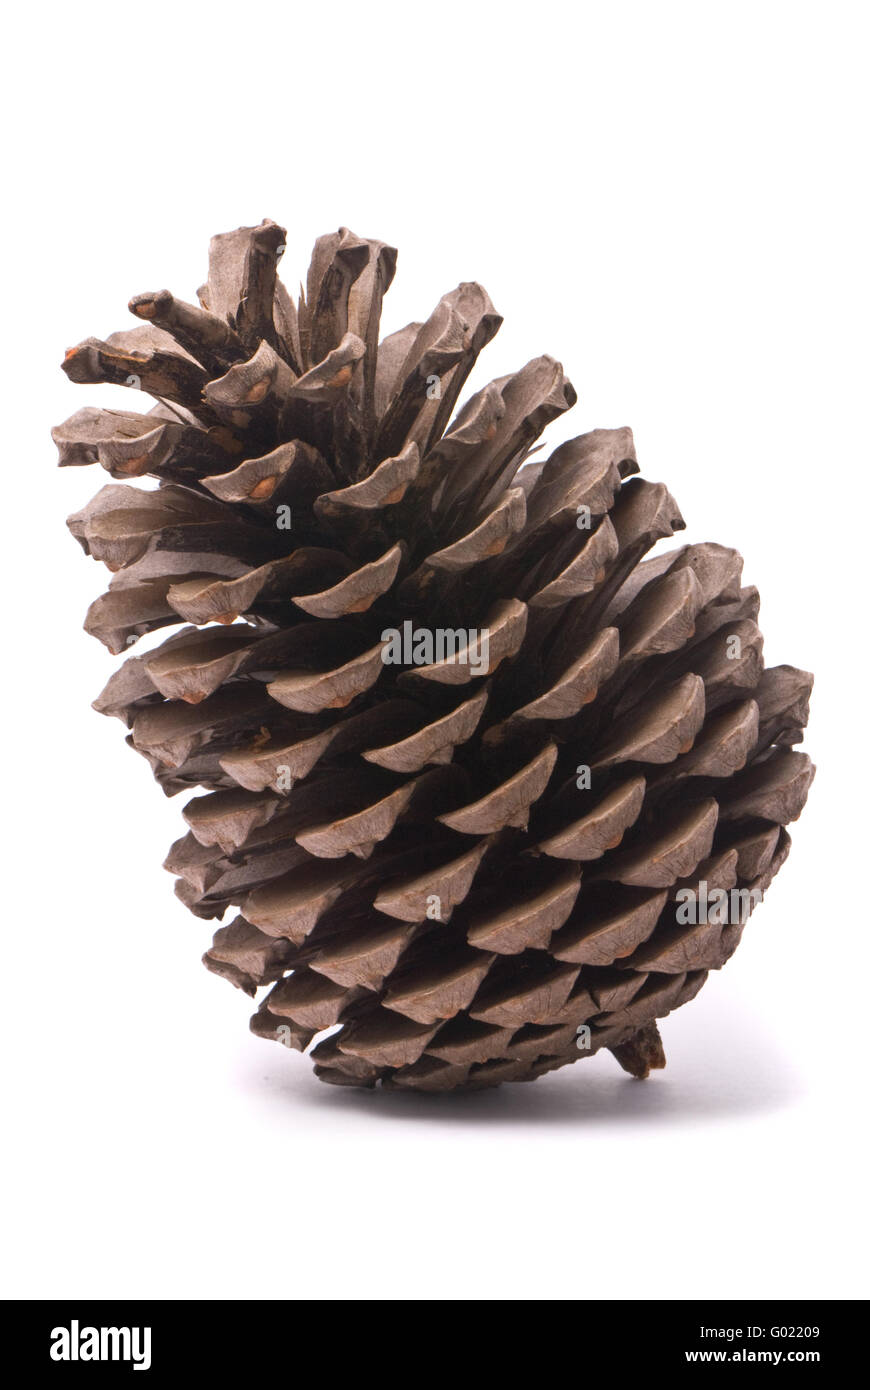 Front view of a pine cone isolated on studio white background - Stock Image